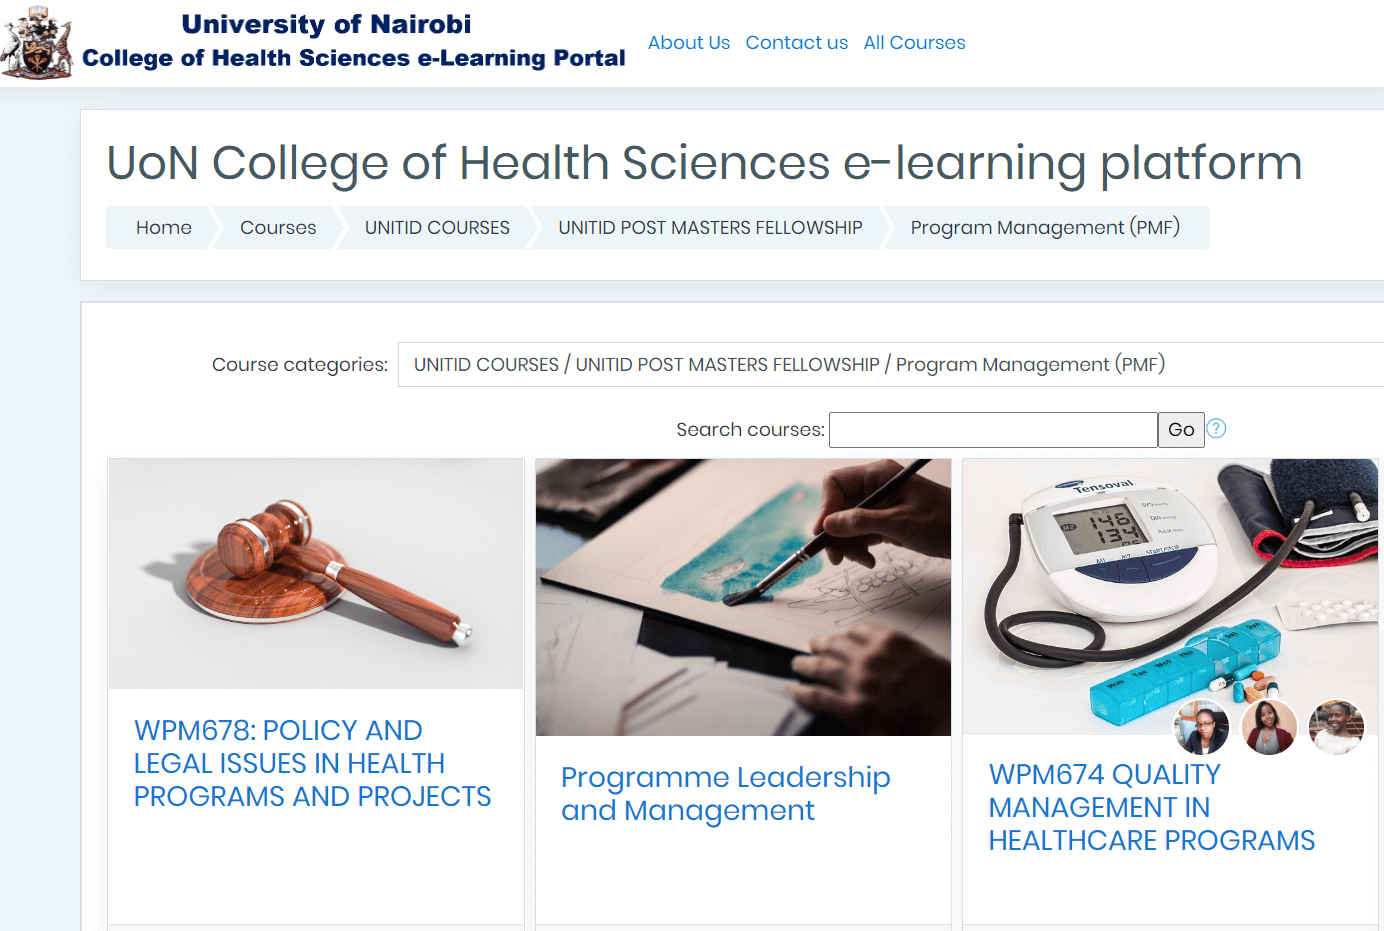 UON_COllege of Health Sciences